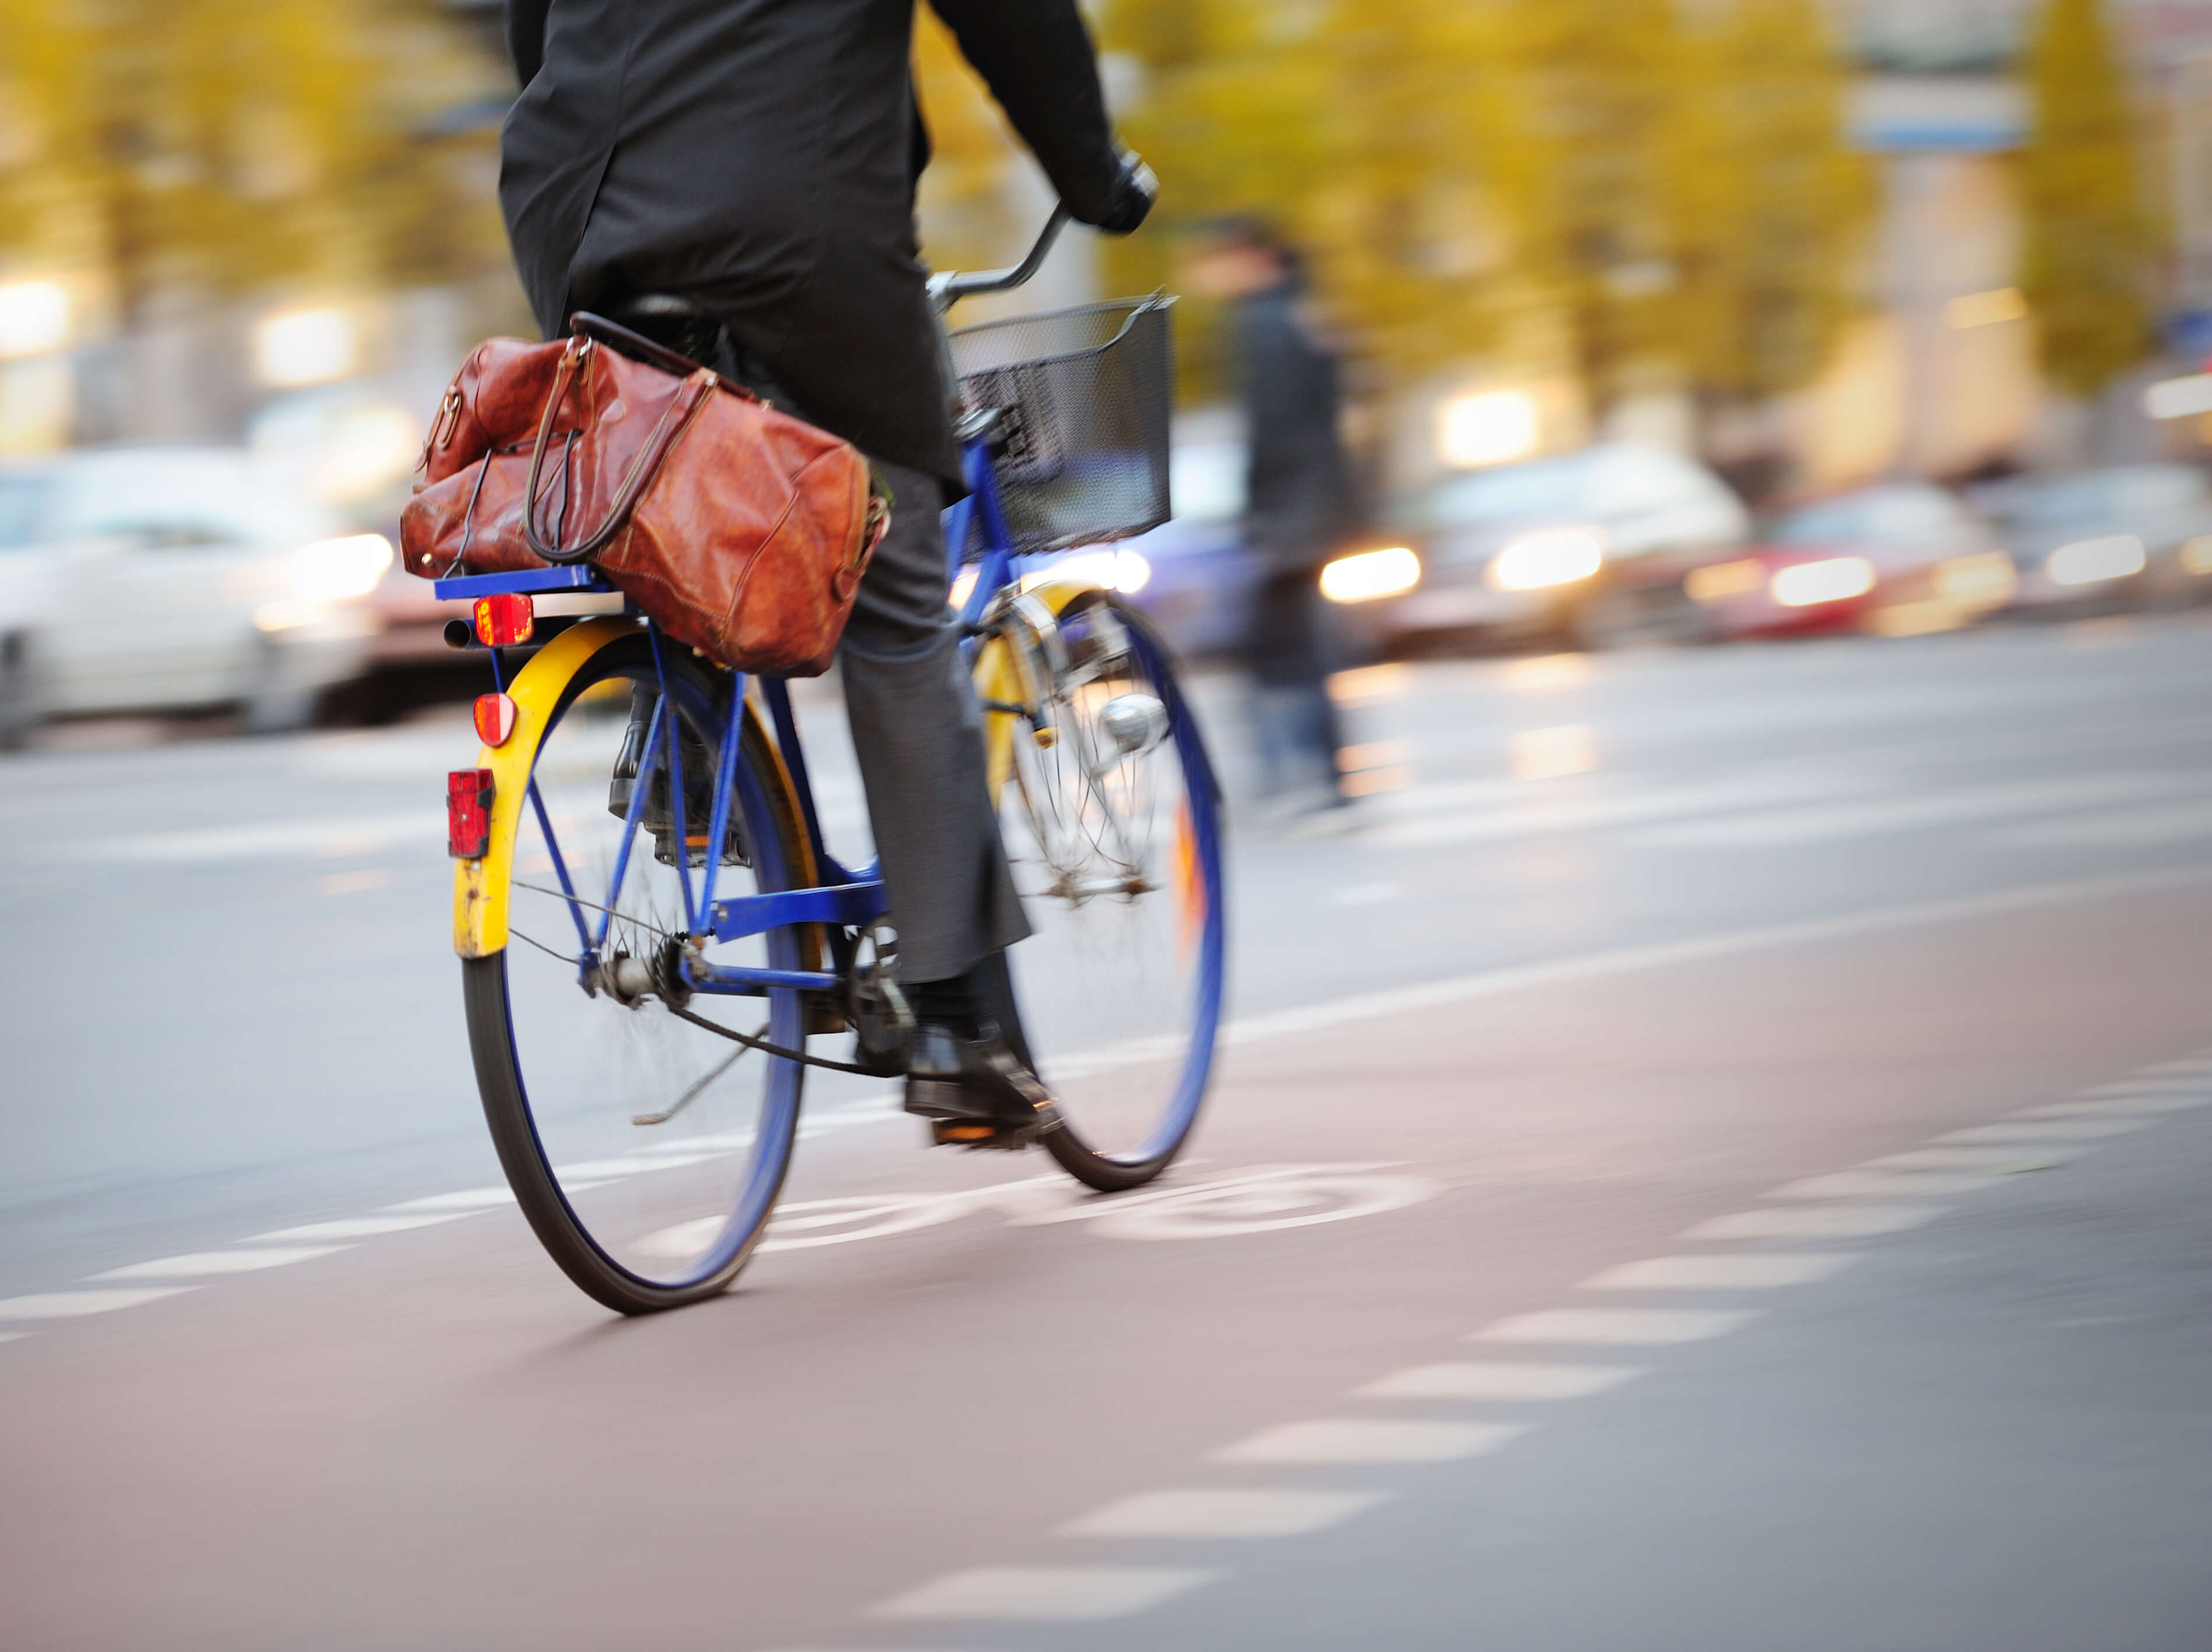 A man rides a blue and yellow bicycle along a busy road